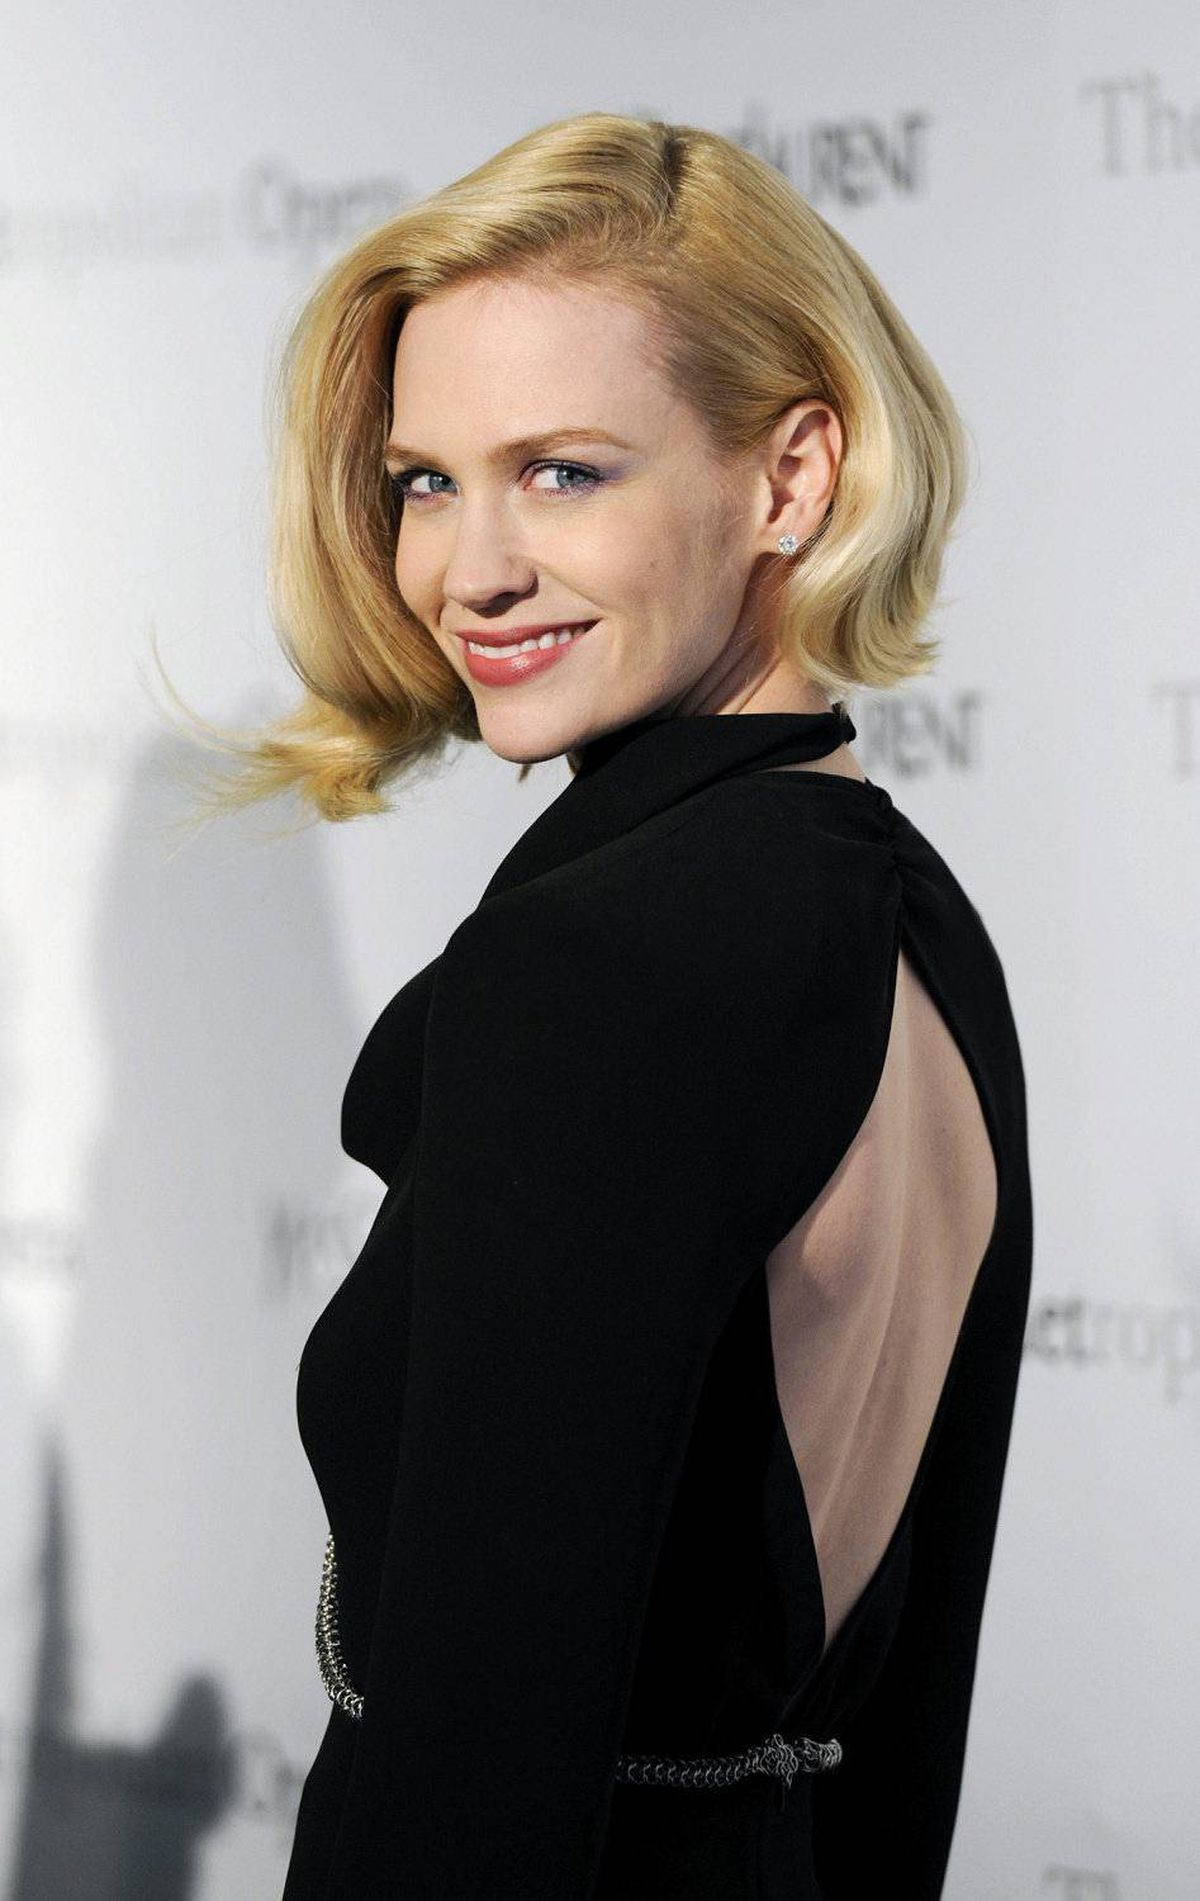 JANUARY JONES 'I am at the right age, the right time in my life, where having [my son] is just so much fun. I feel very lucky, I think being a mother is something I was meant to do.' Source: Grazia